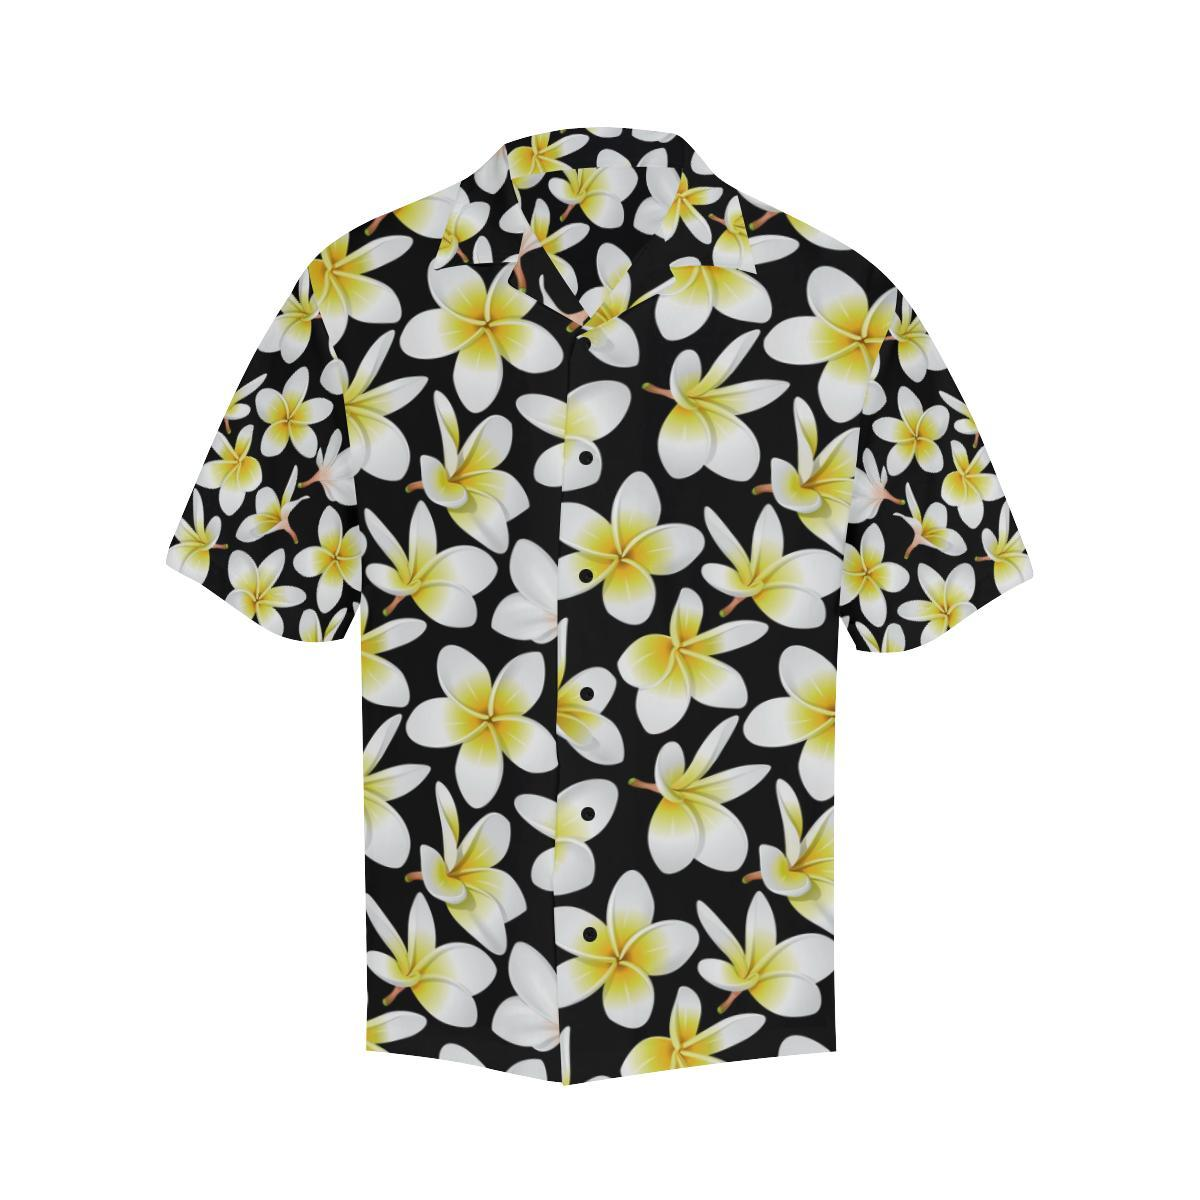 672a10a9 Size Guide. undefined. SIZE GUIDE. Product Details. Yellow Plumeria Hawaiian  Flowers Men Aloha Hawaiian Shirt ...